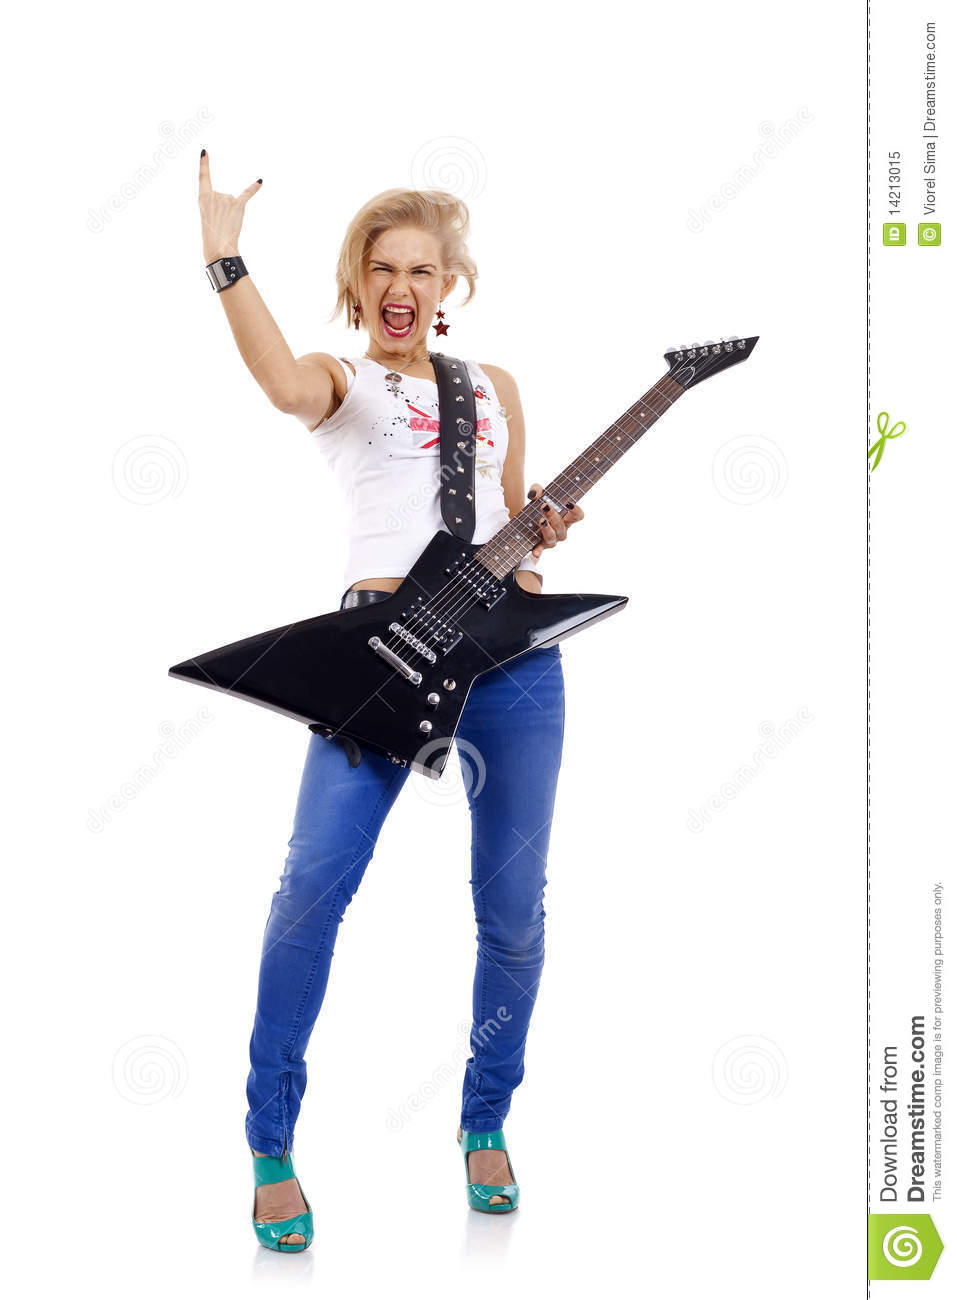 Rock And Roll Royalty Free Stock Photo - Image: 14213015